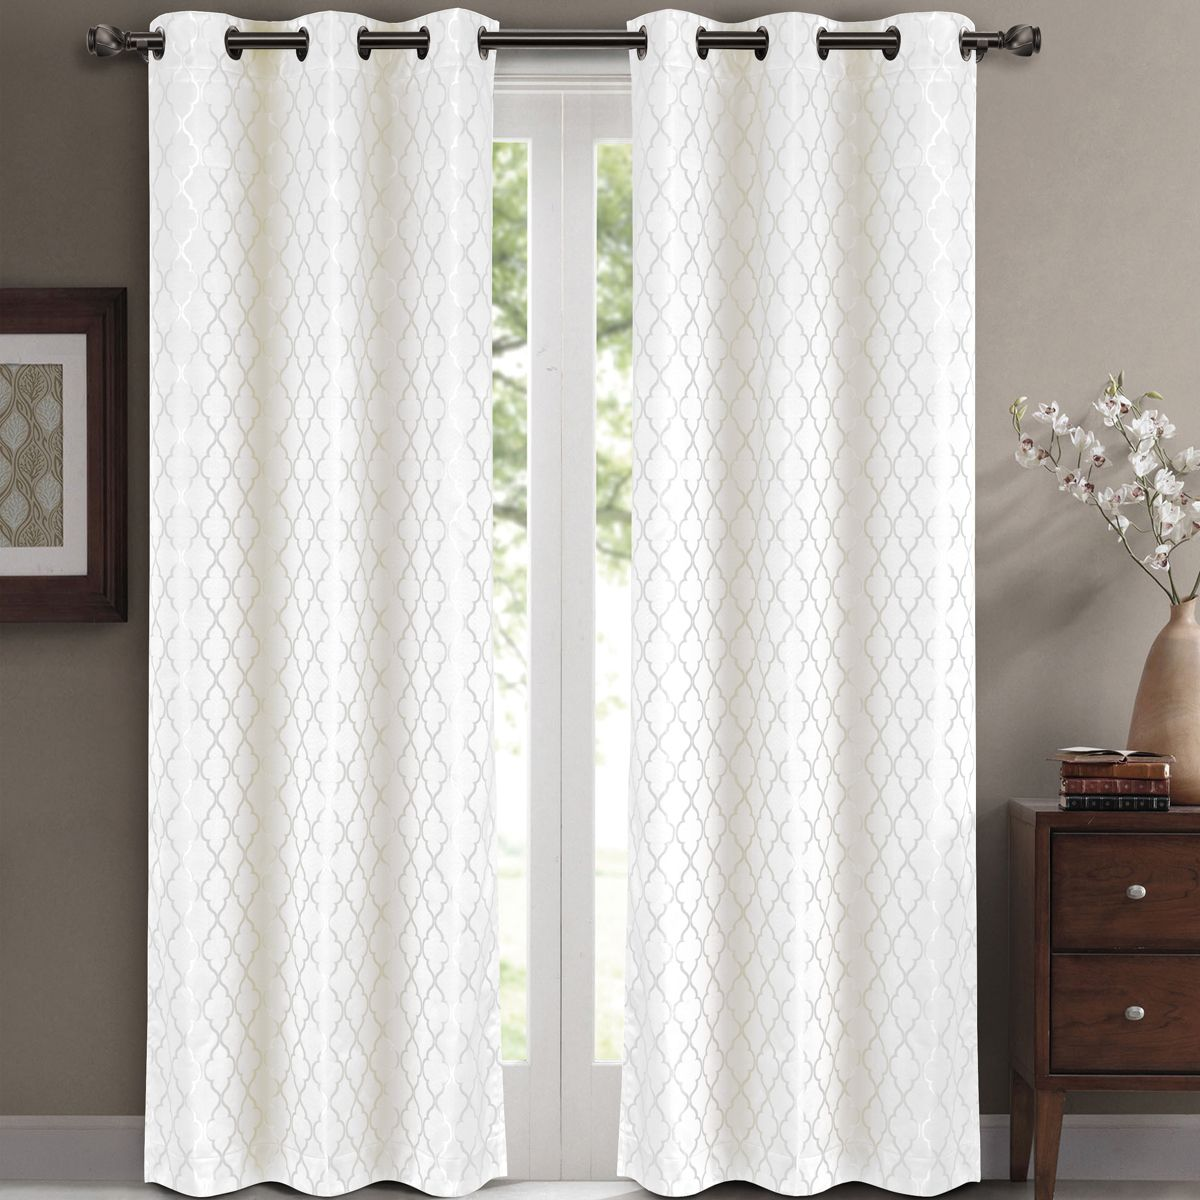 Pin By Kristy T On Decor Ideas In 2021 White Blackout Curtains Curtains Living Room White Paneling